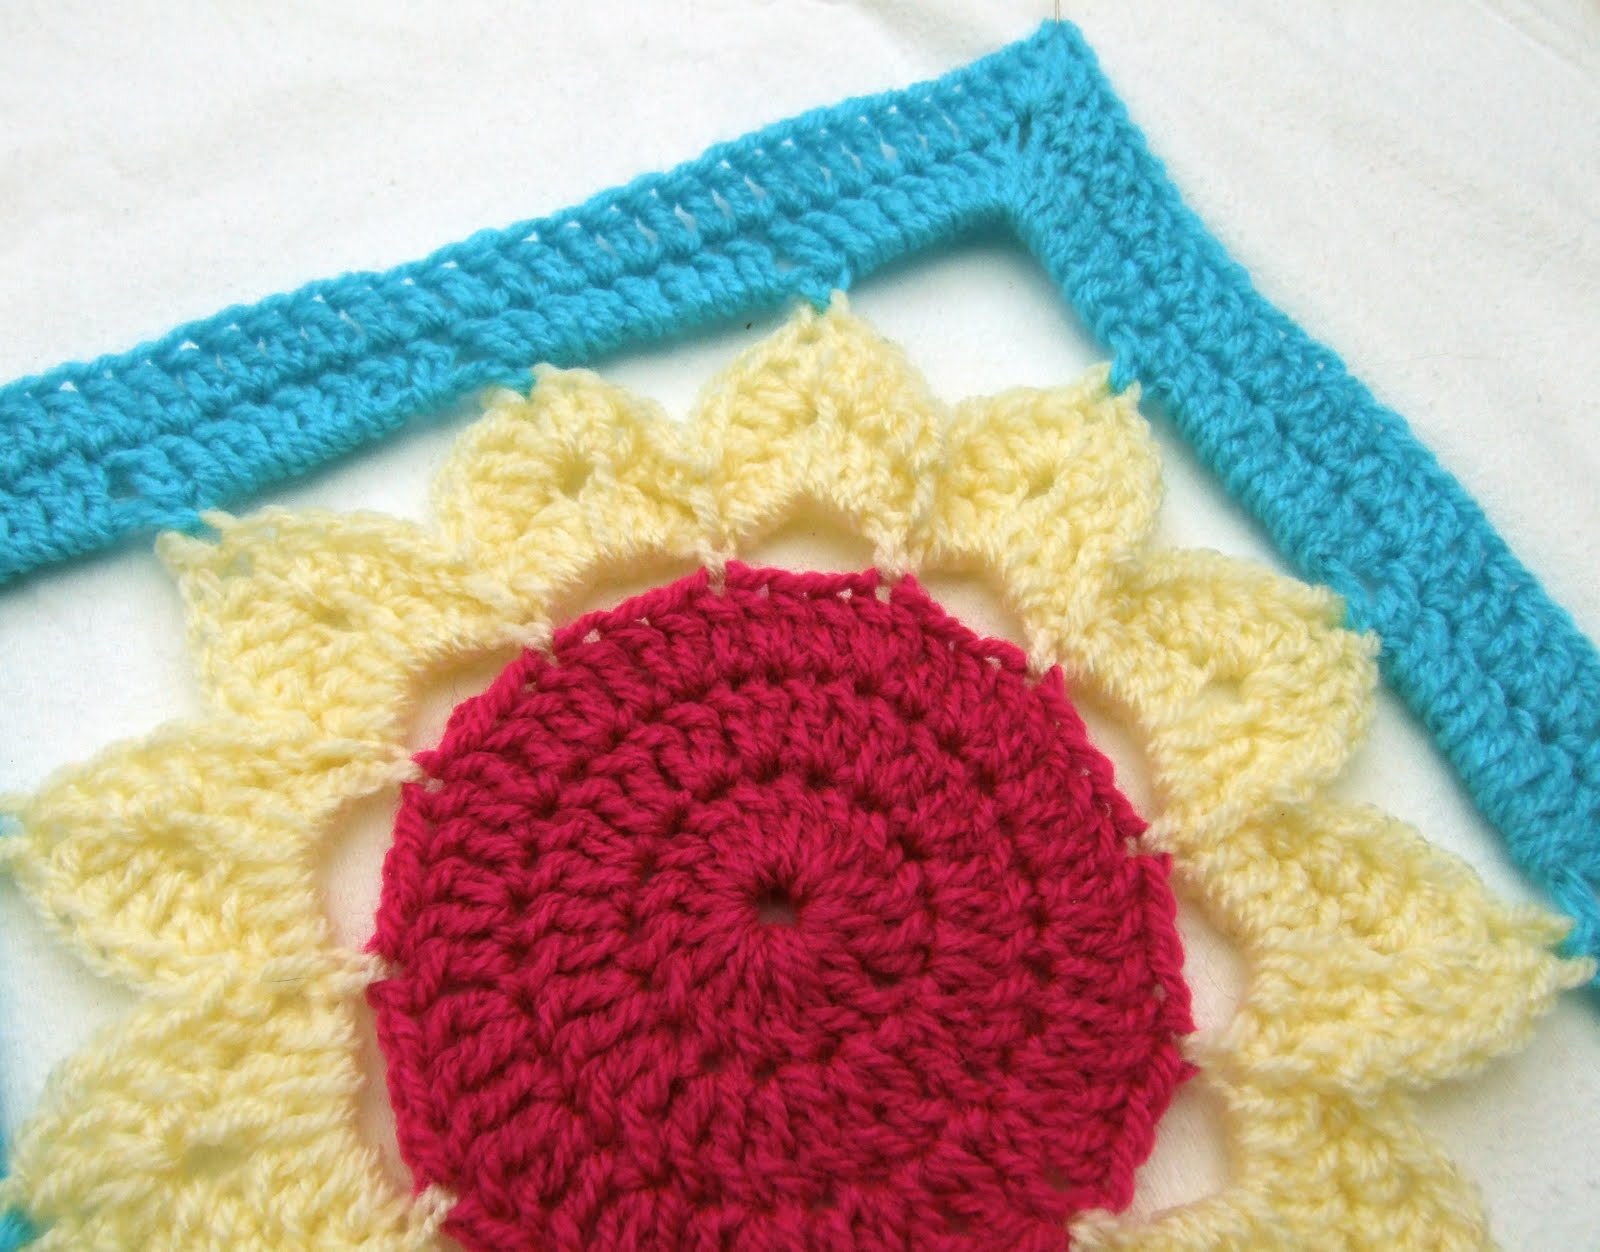 Crochet Patterns Large Hook : CROCHET FREE HOOK LARGE LARGE PATTERN SIZE USING - Crochet Club